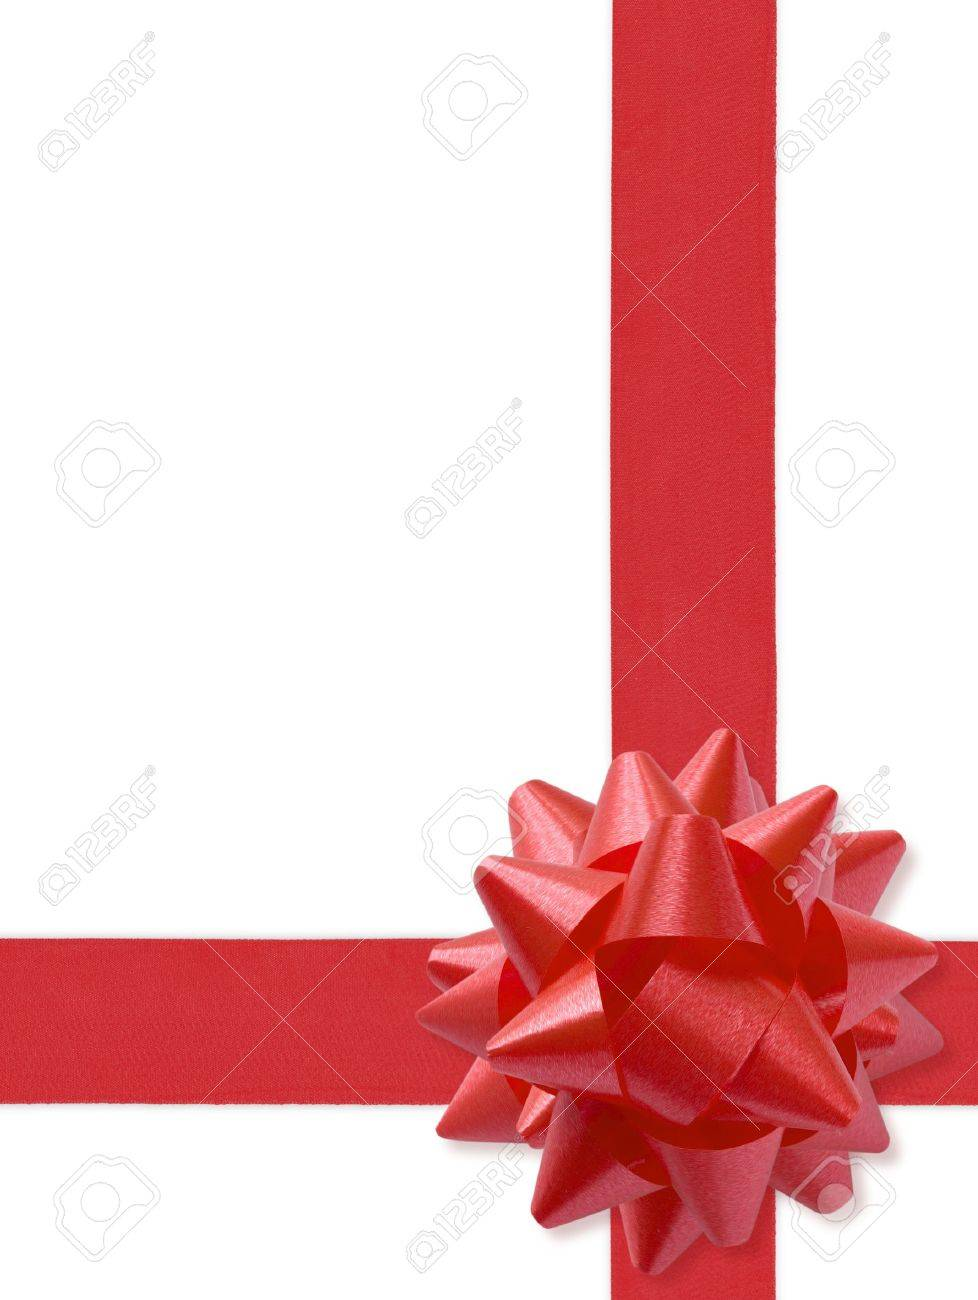 Red gift bows border with clipping path for easy background removing - Festive Ribbon Isolated On White With Clipping Path For Easy Background Removing If Needed